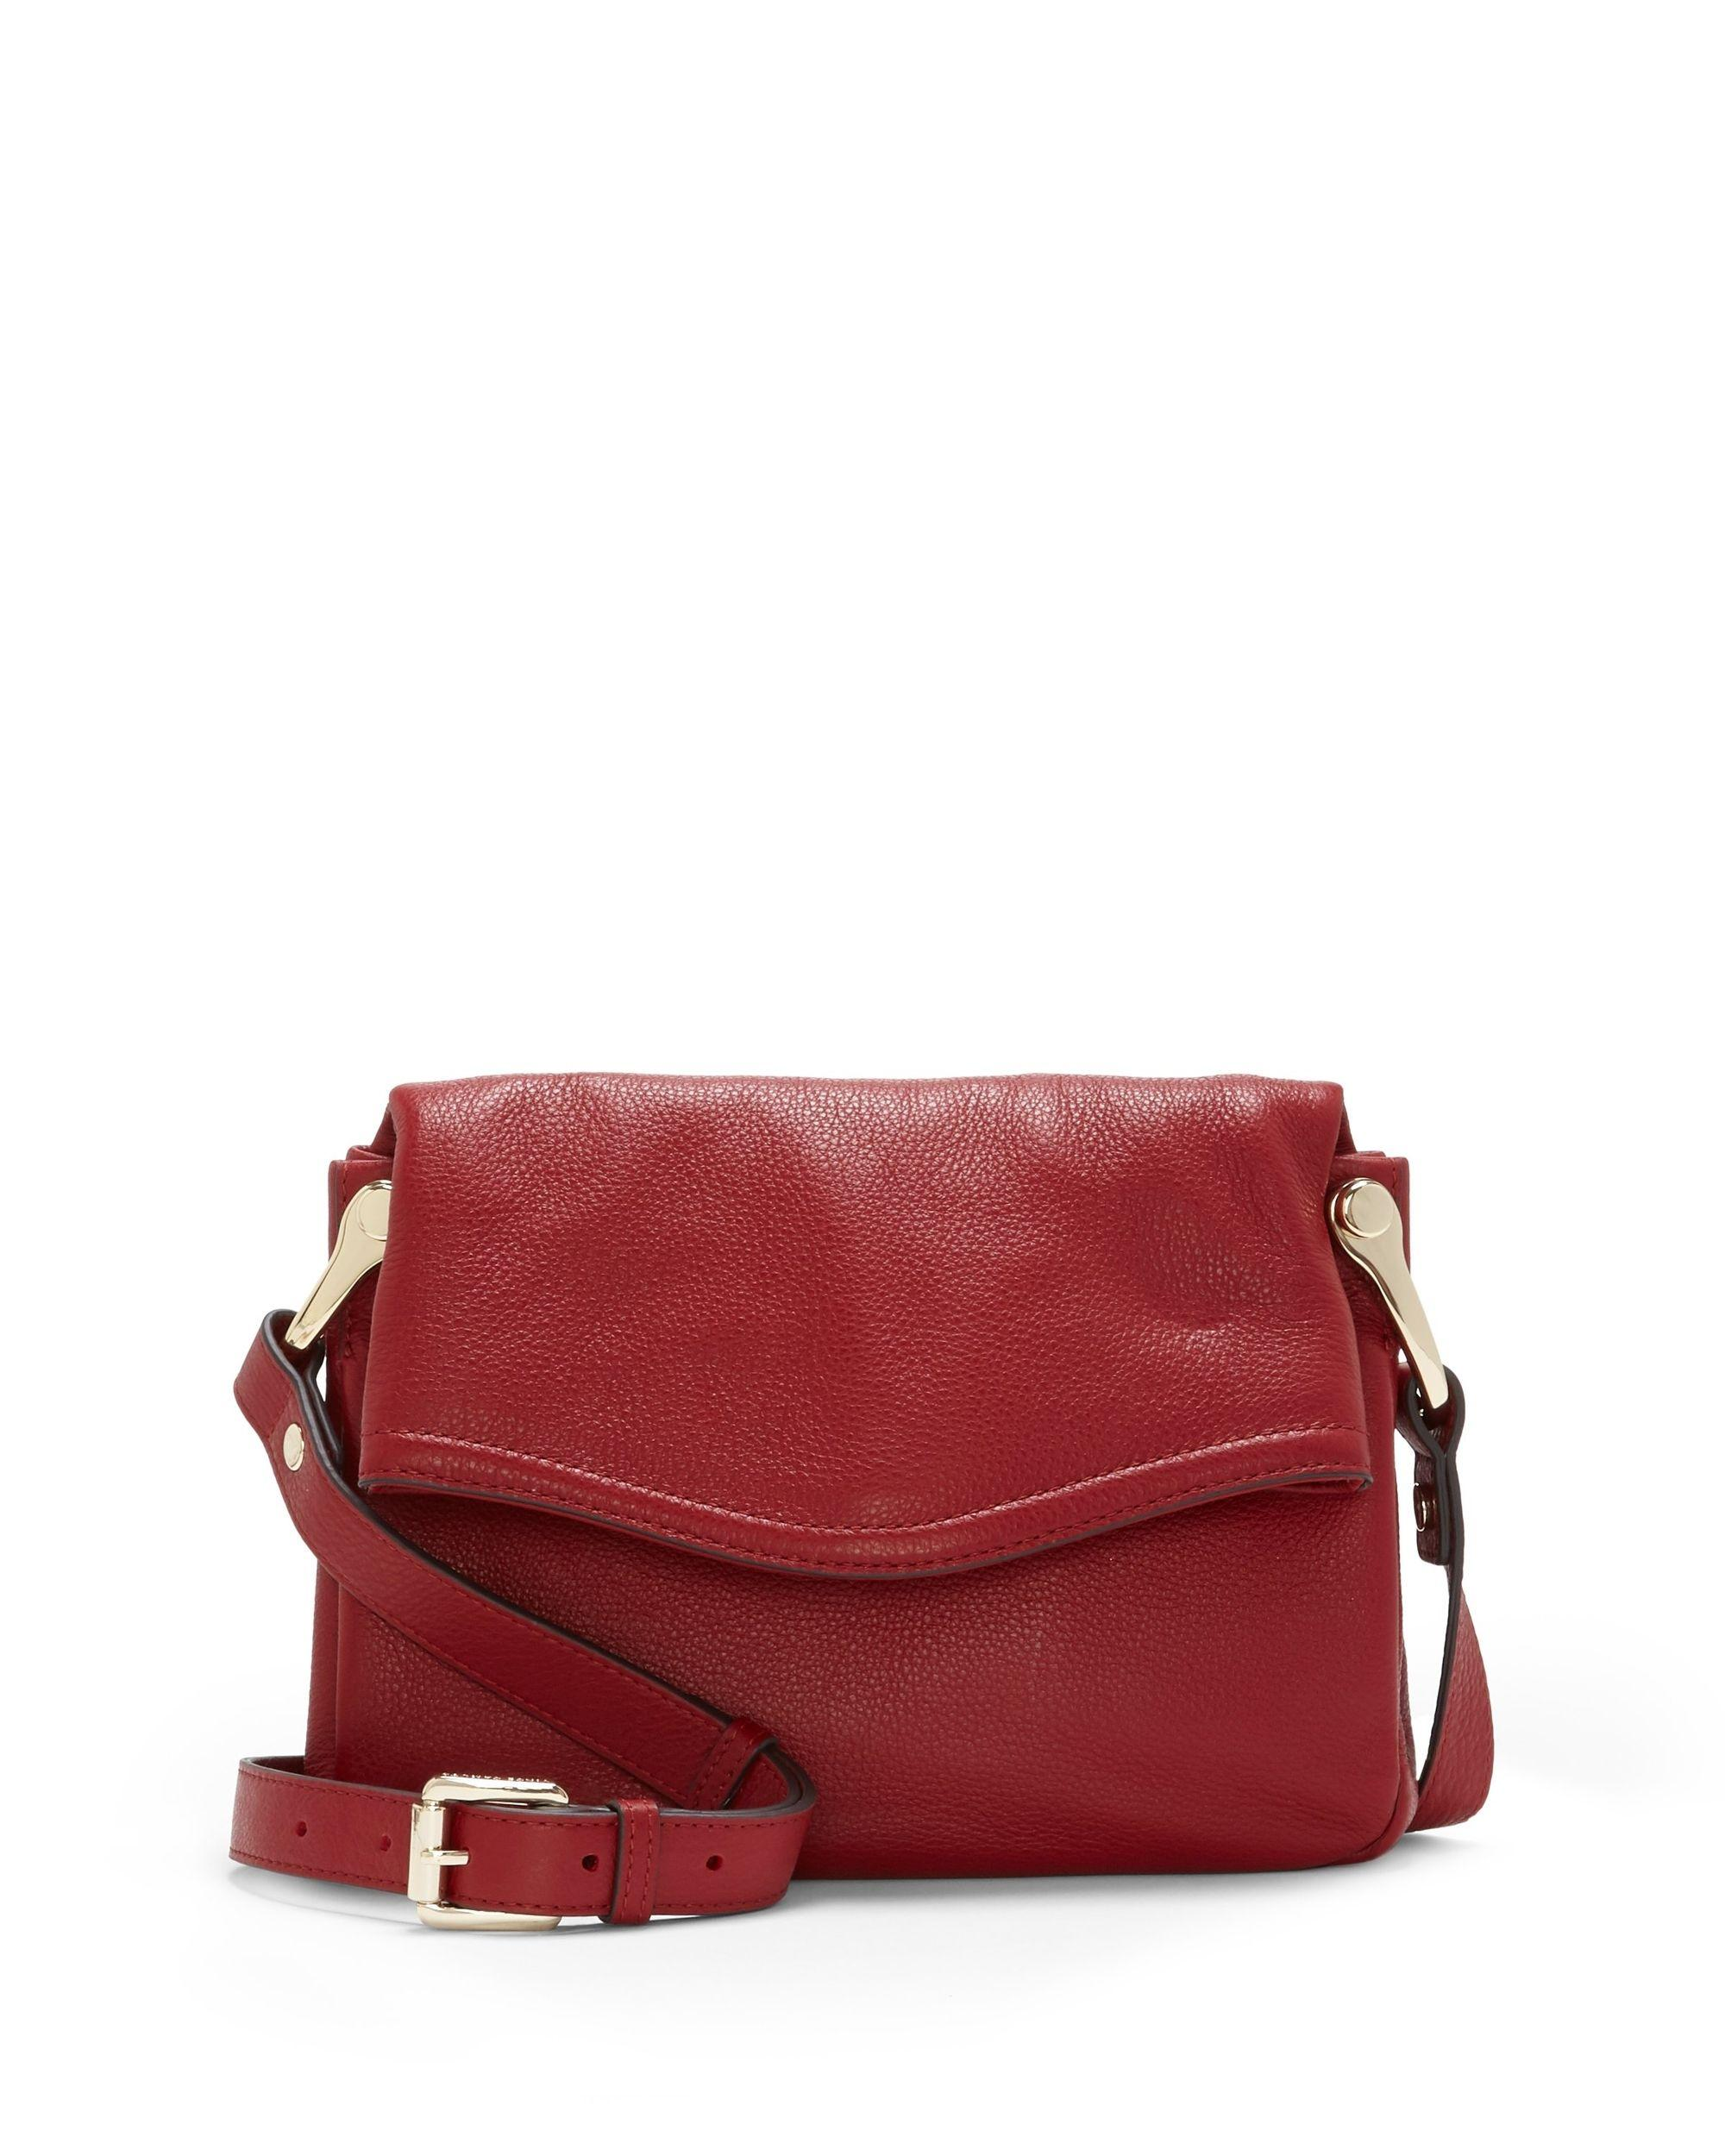 fd810ebf5 ... Crossbody Bag - Lyst · Visit Vince Camuto. Tap to visit site